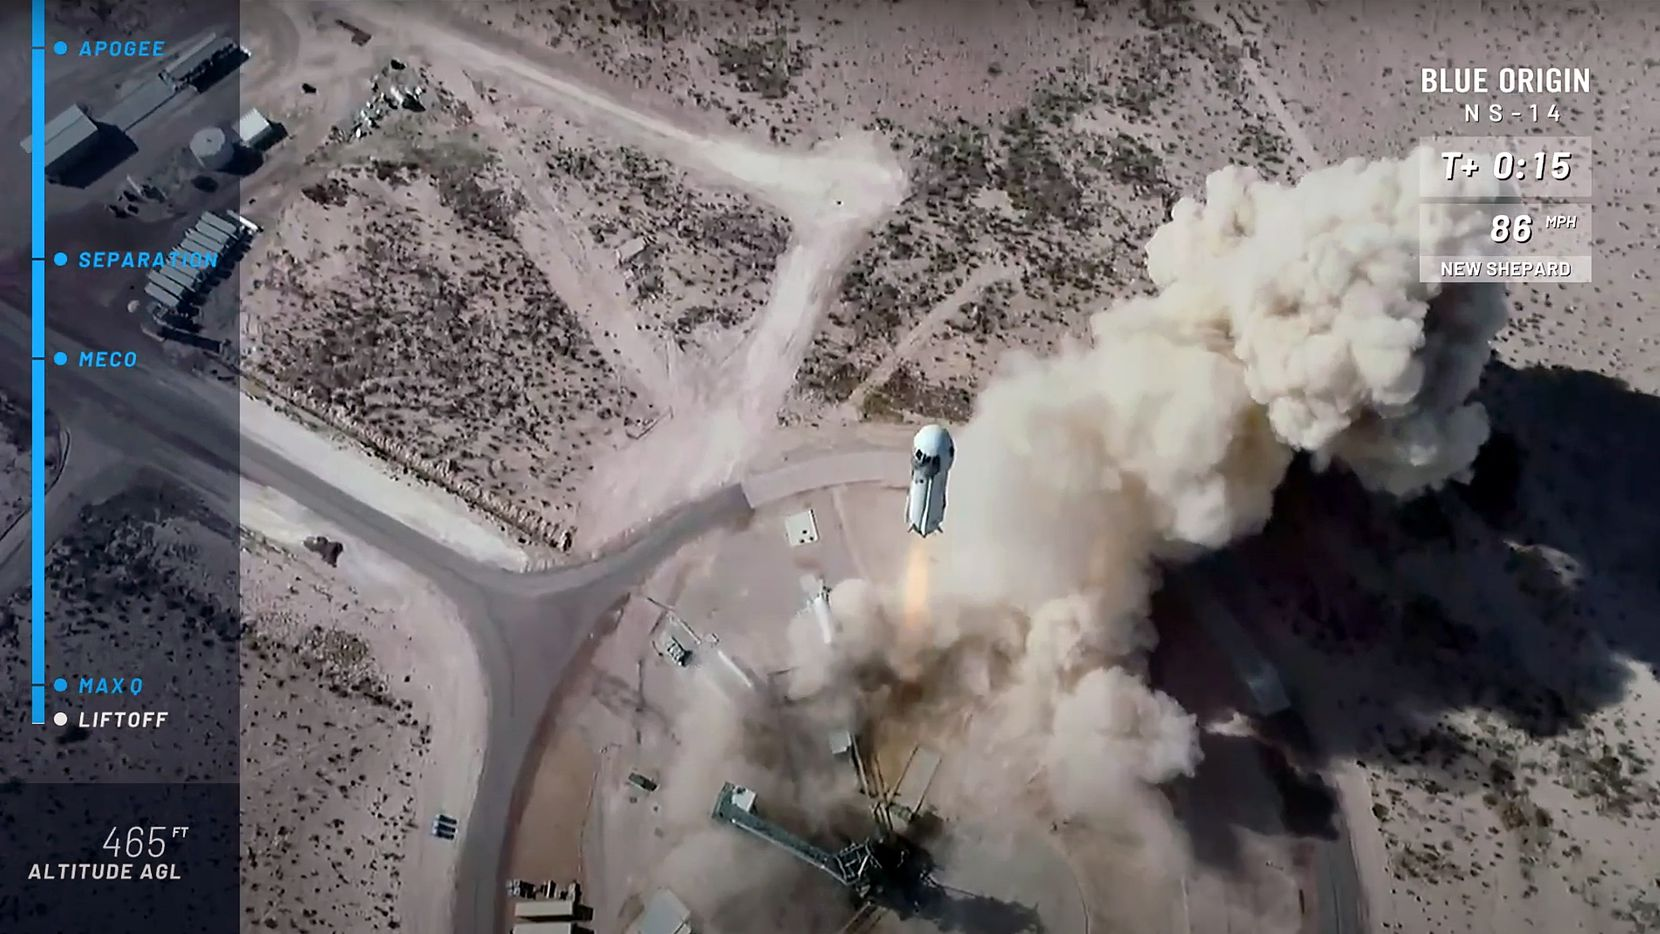 This frame grab from Blue Origin's livestream Thursday shows its New Shepard rocket blasting off in West Texas on its 14th mission.